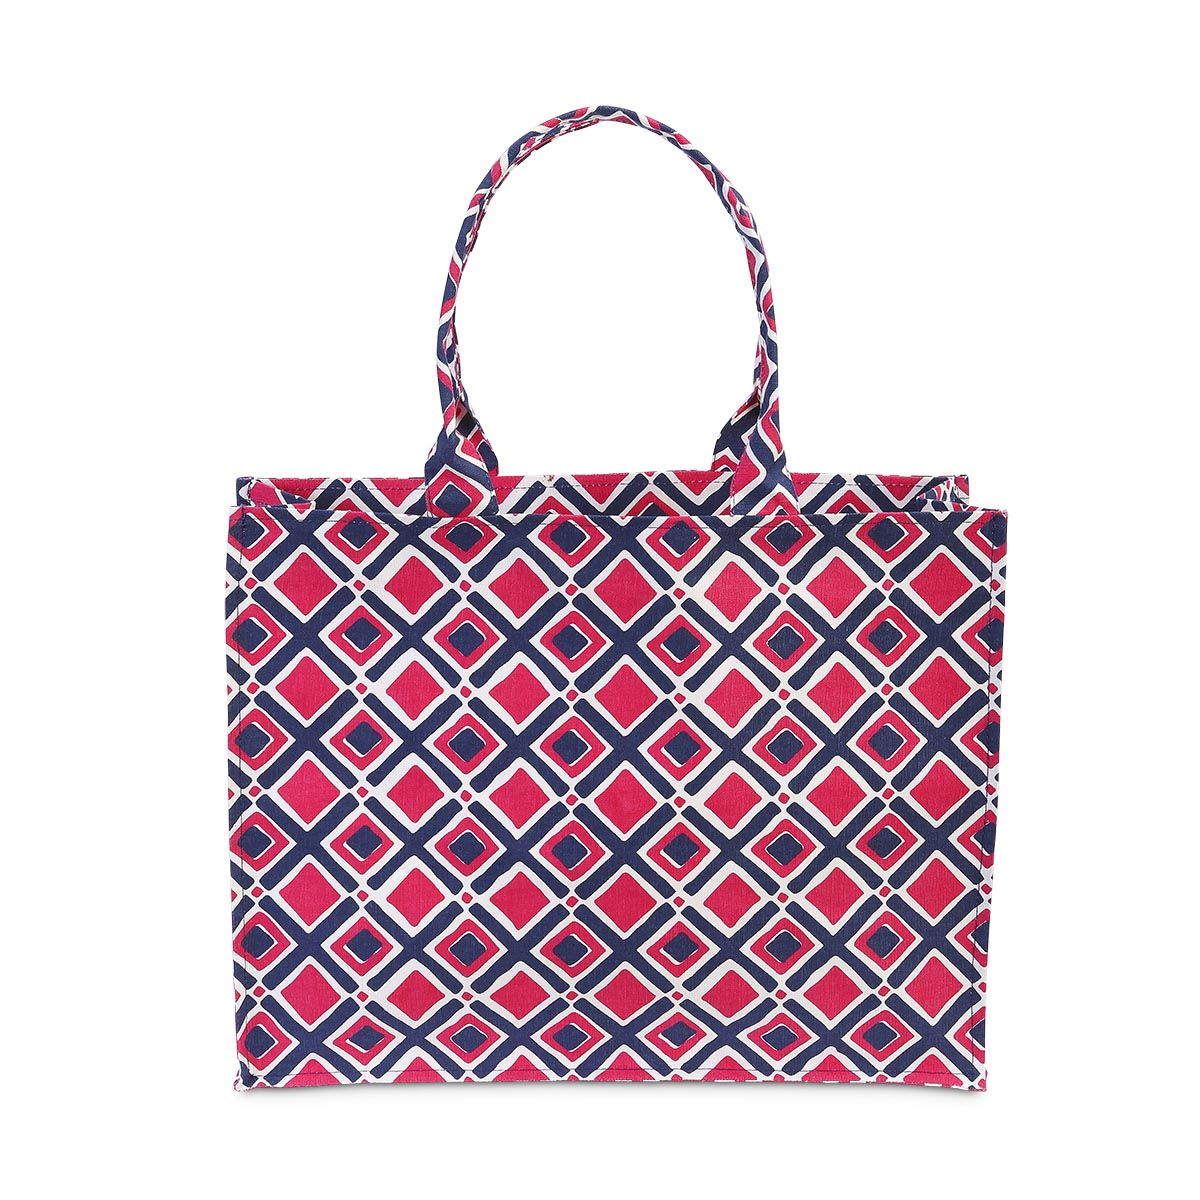 times square navy/pink canvas tote